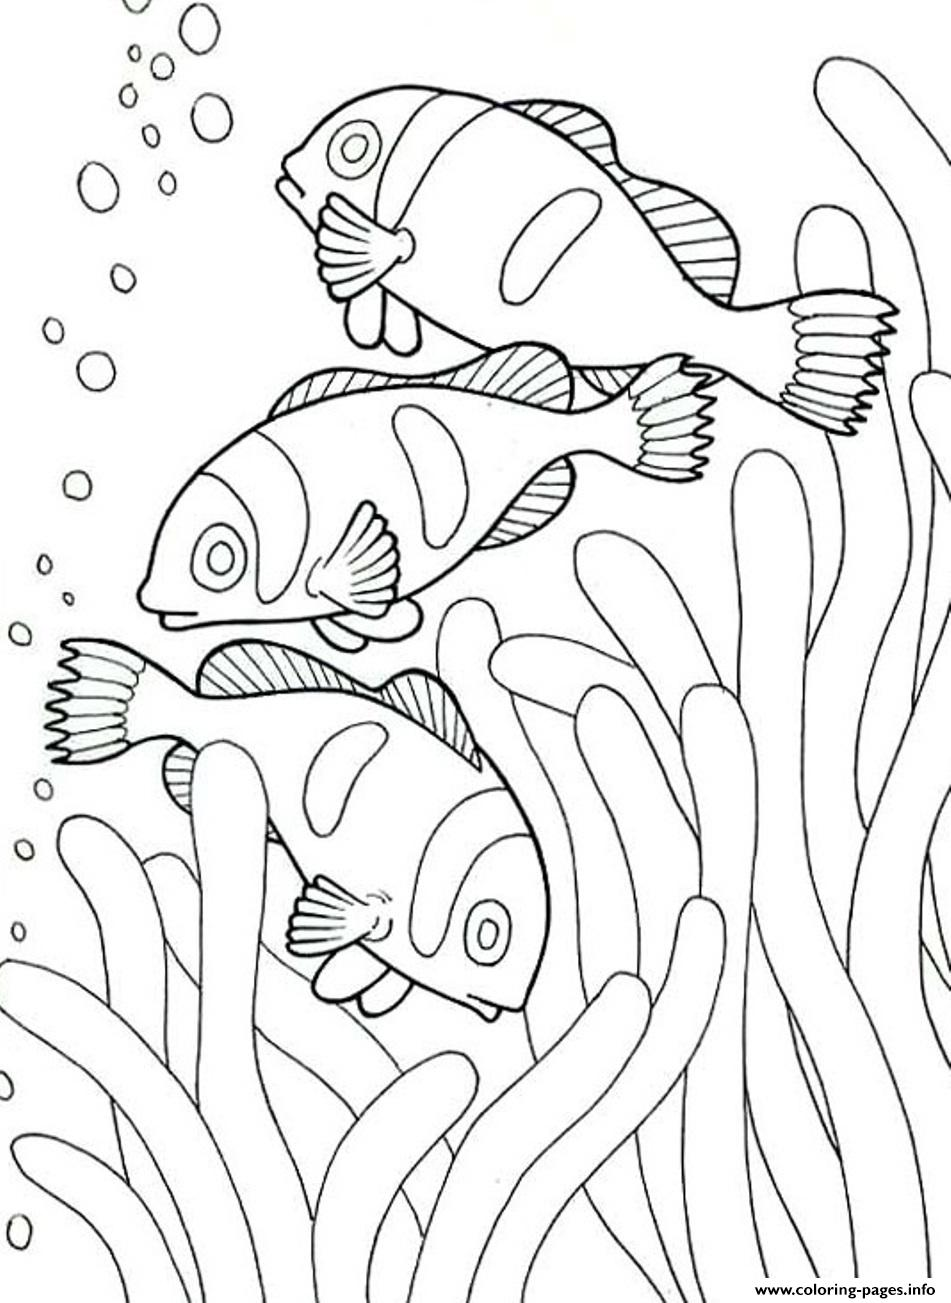 coloring pages of sea animals clown fish53dd coloring pages